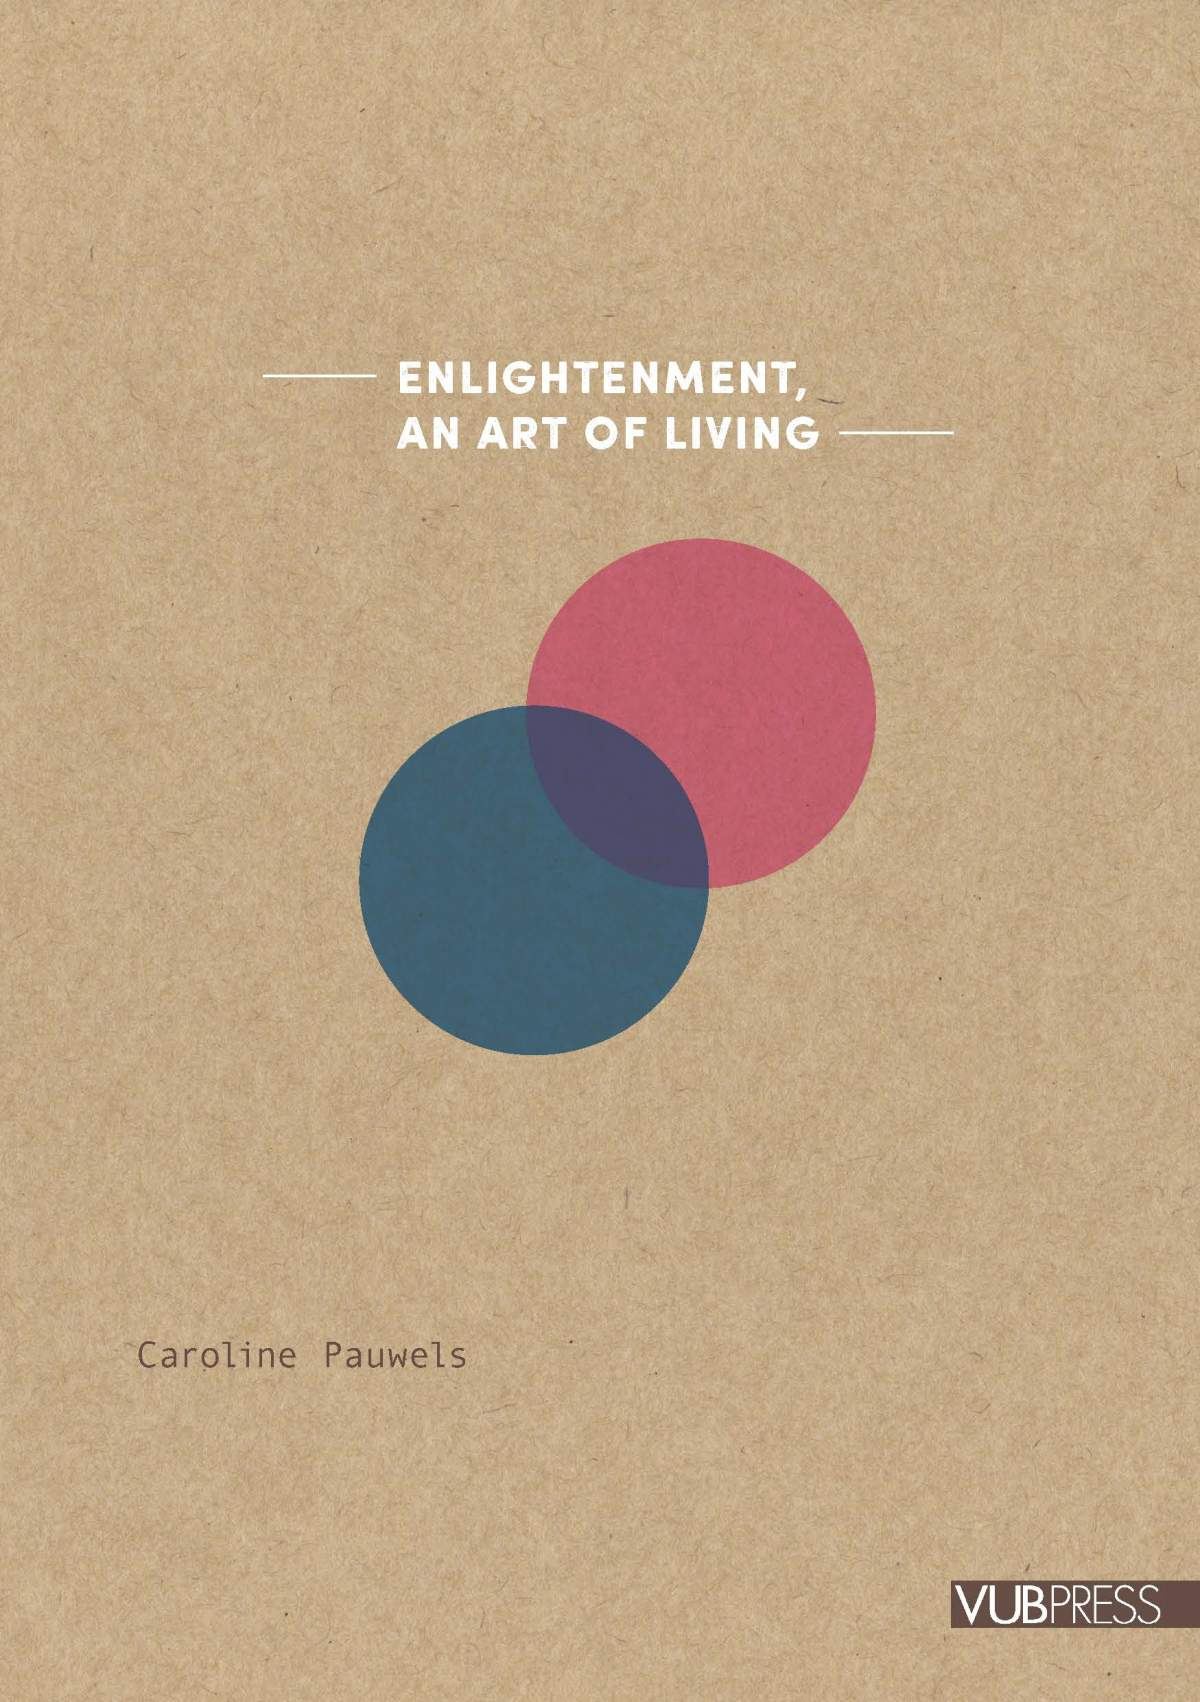 ENLIGHTENMENT, AN ART OF LIVING